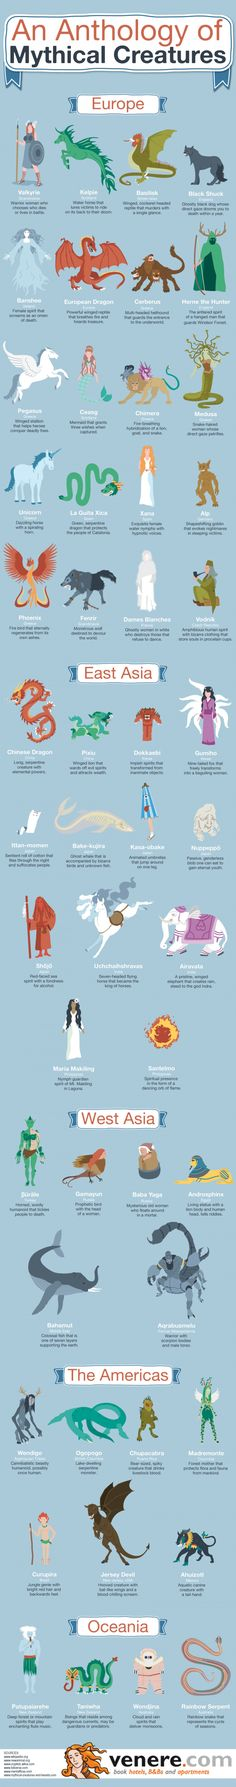 Travel booking site Venere made a spirited attempt to display just some of the mythological monsters of the world on an infographic. My first impressions were all positive.